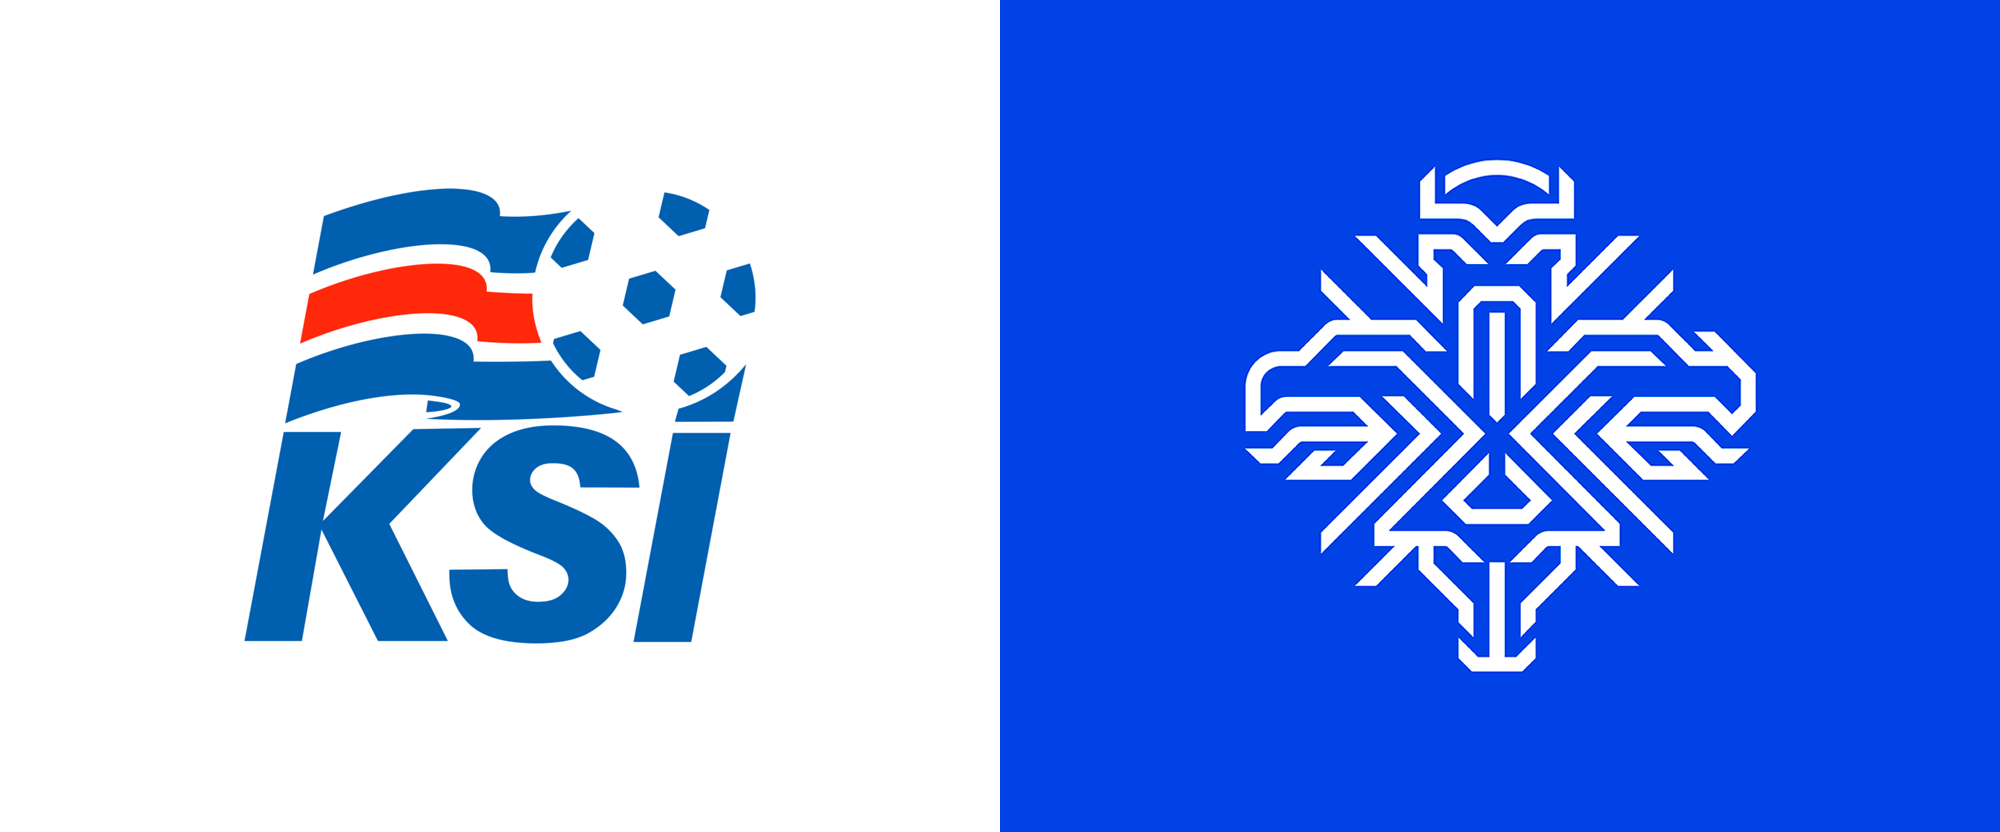 New Logo and Identity for Iceland National Football Team by Brandenburg